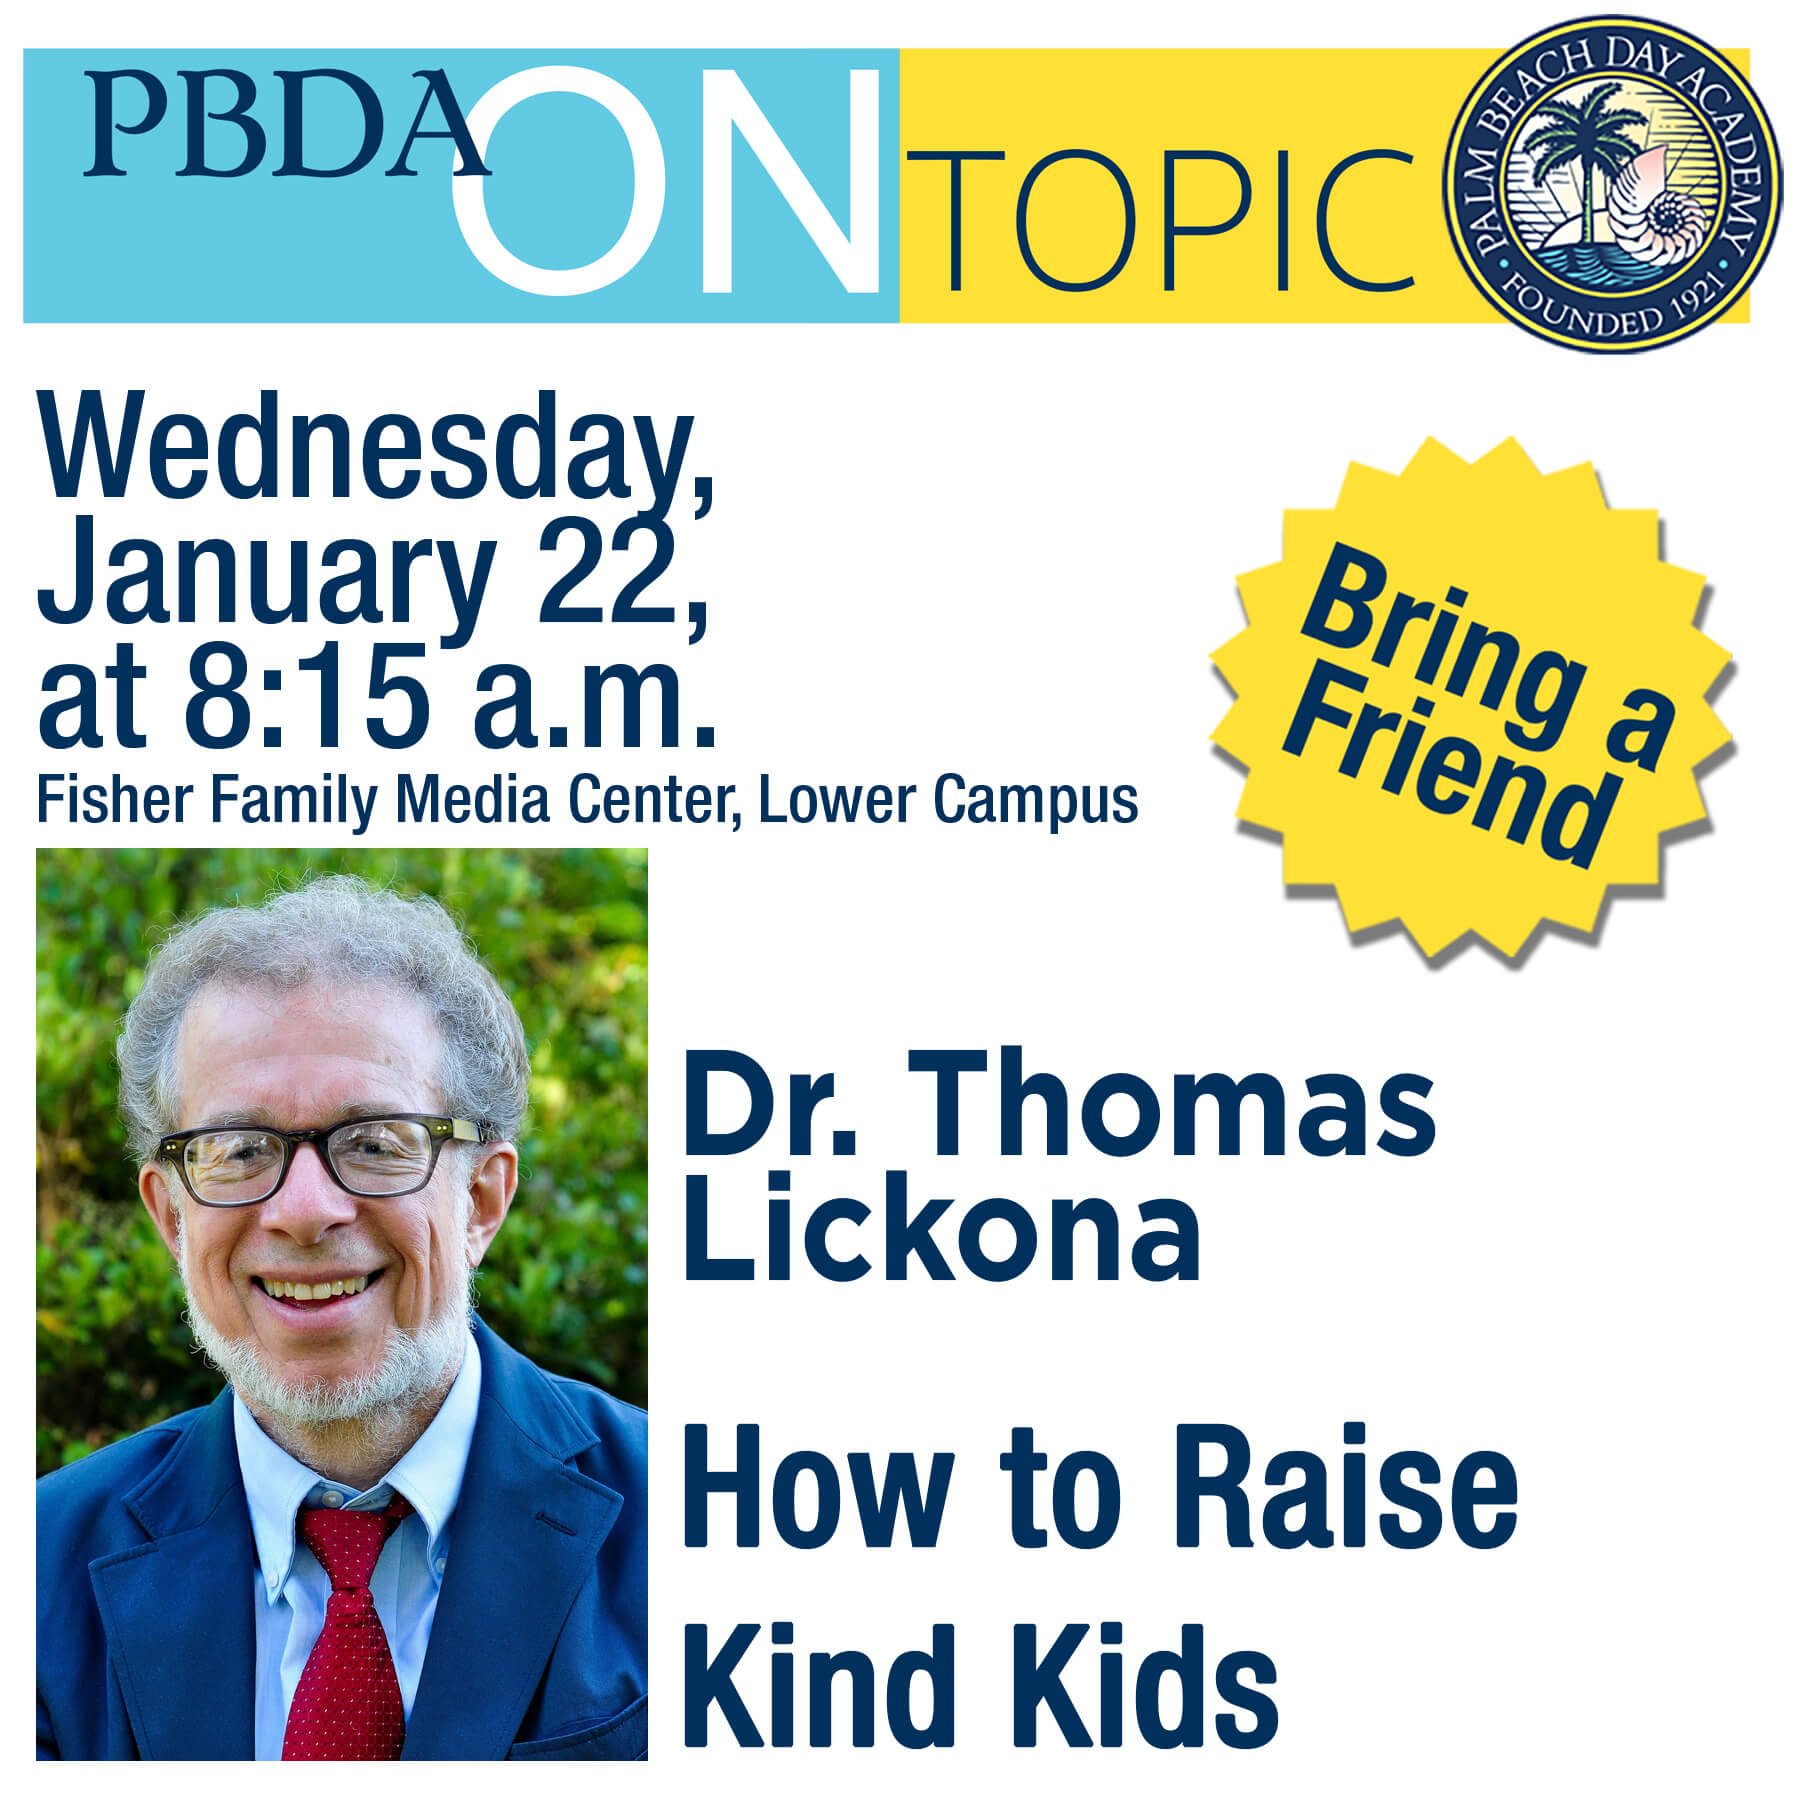 PBDA On Topic Thomas Lickona, Ph.D.